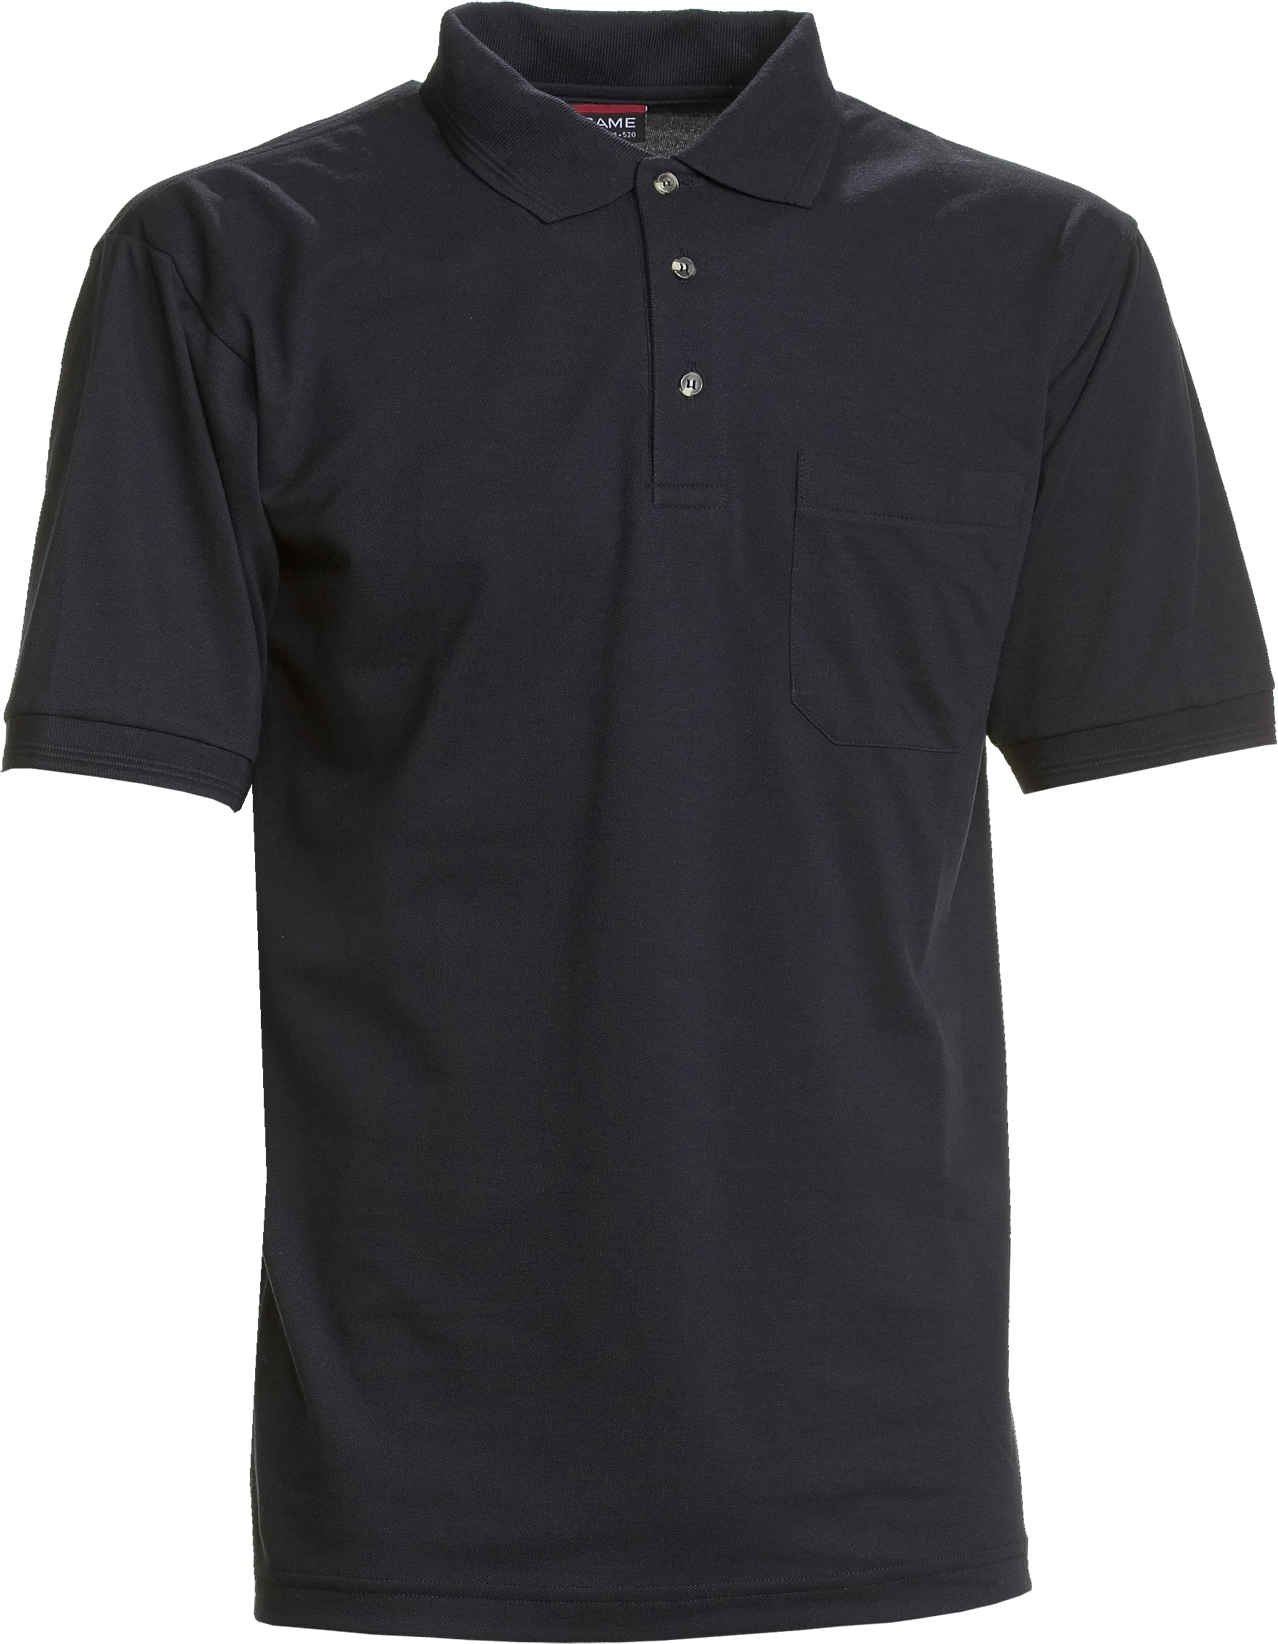 Mens Polo Shirt w. breastpocket, Basic (825012100) - NOOS